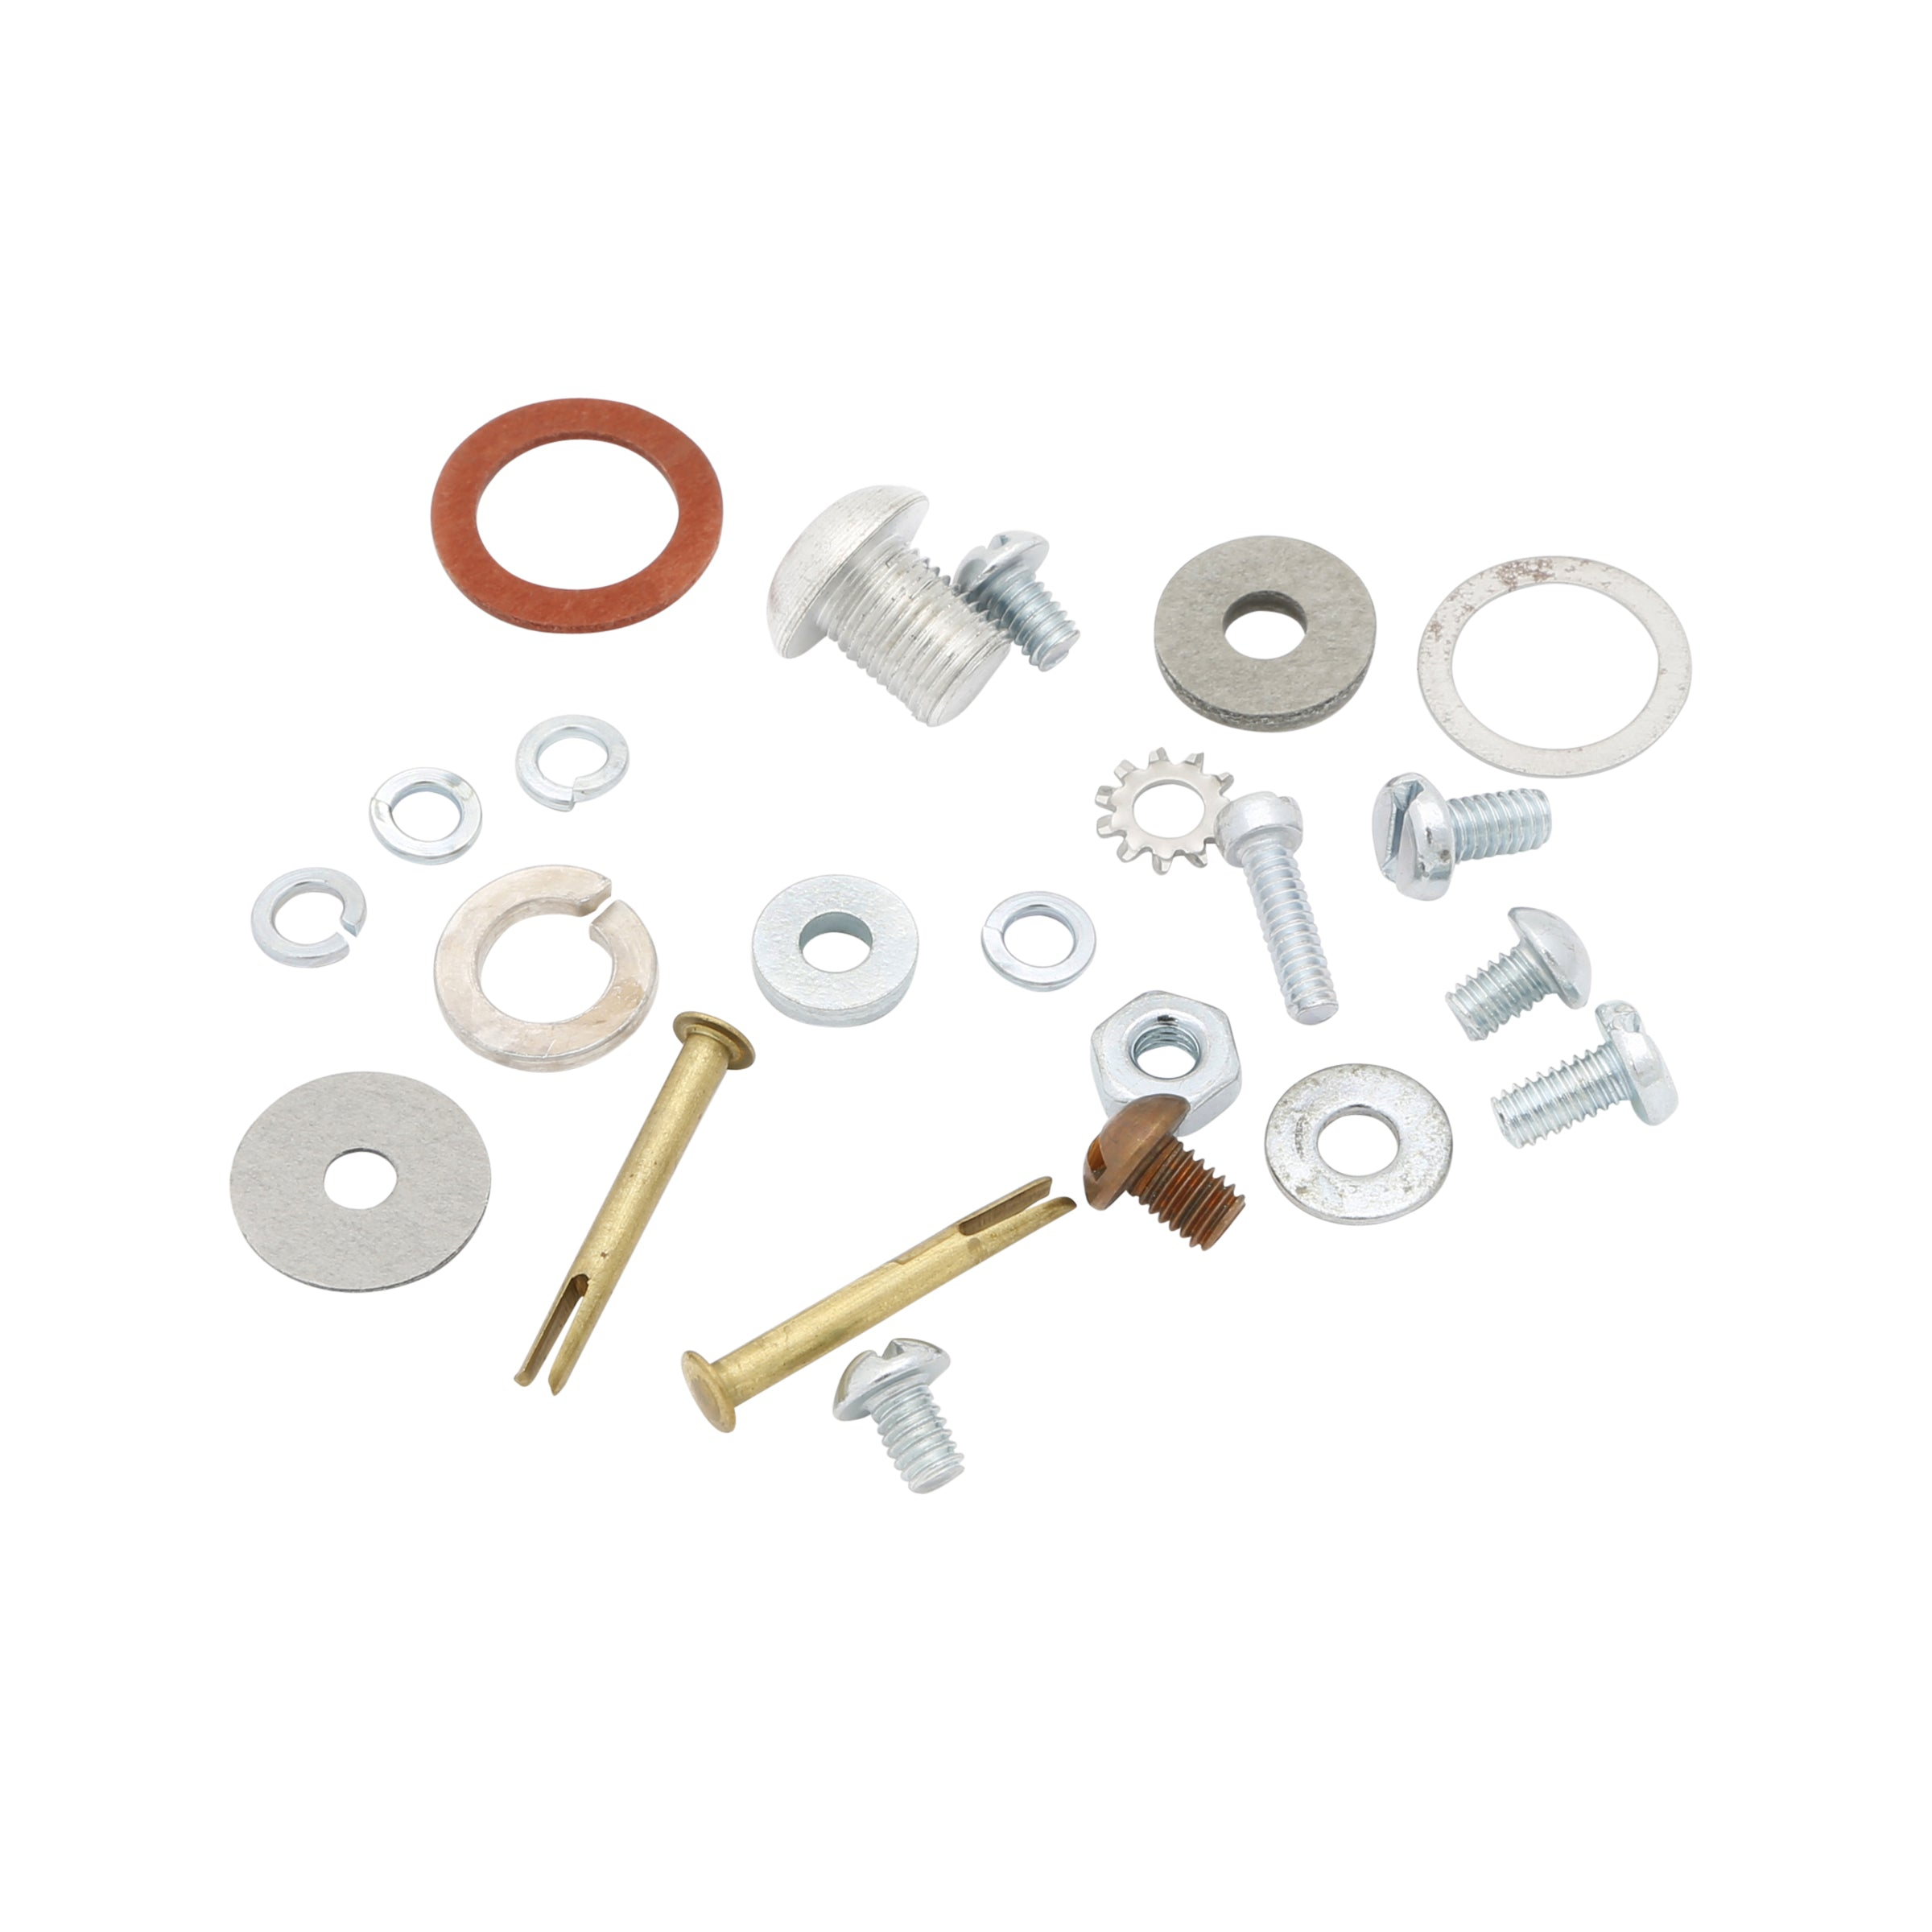 Distributor Small Parts Kit • 1928-31